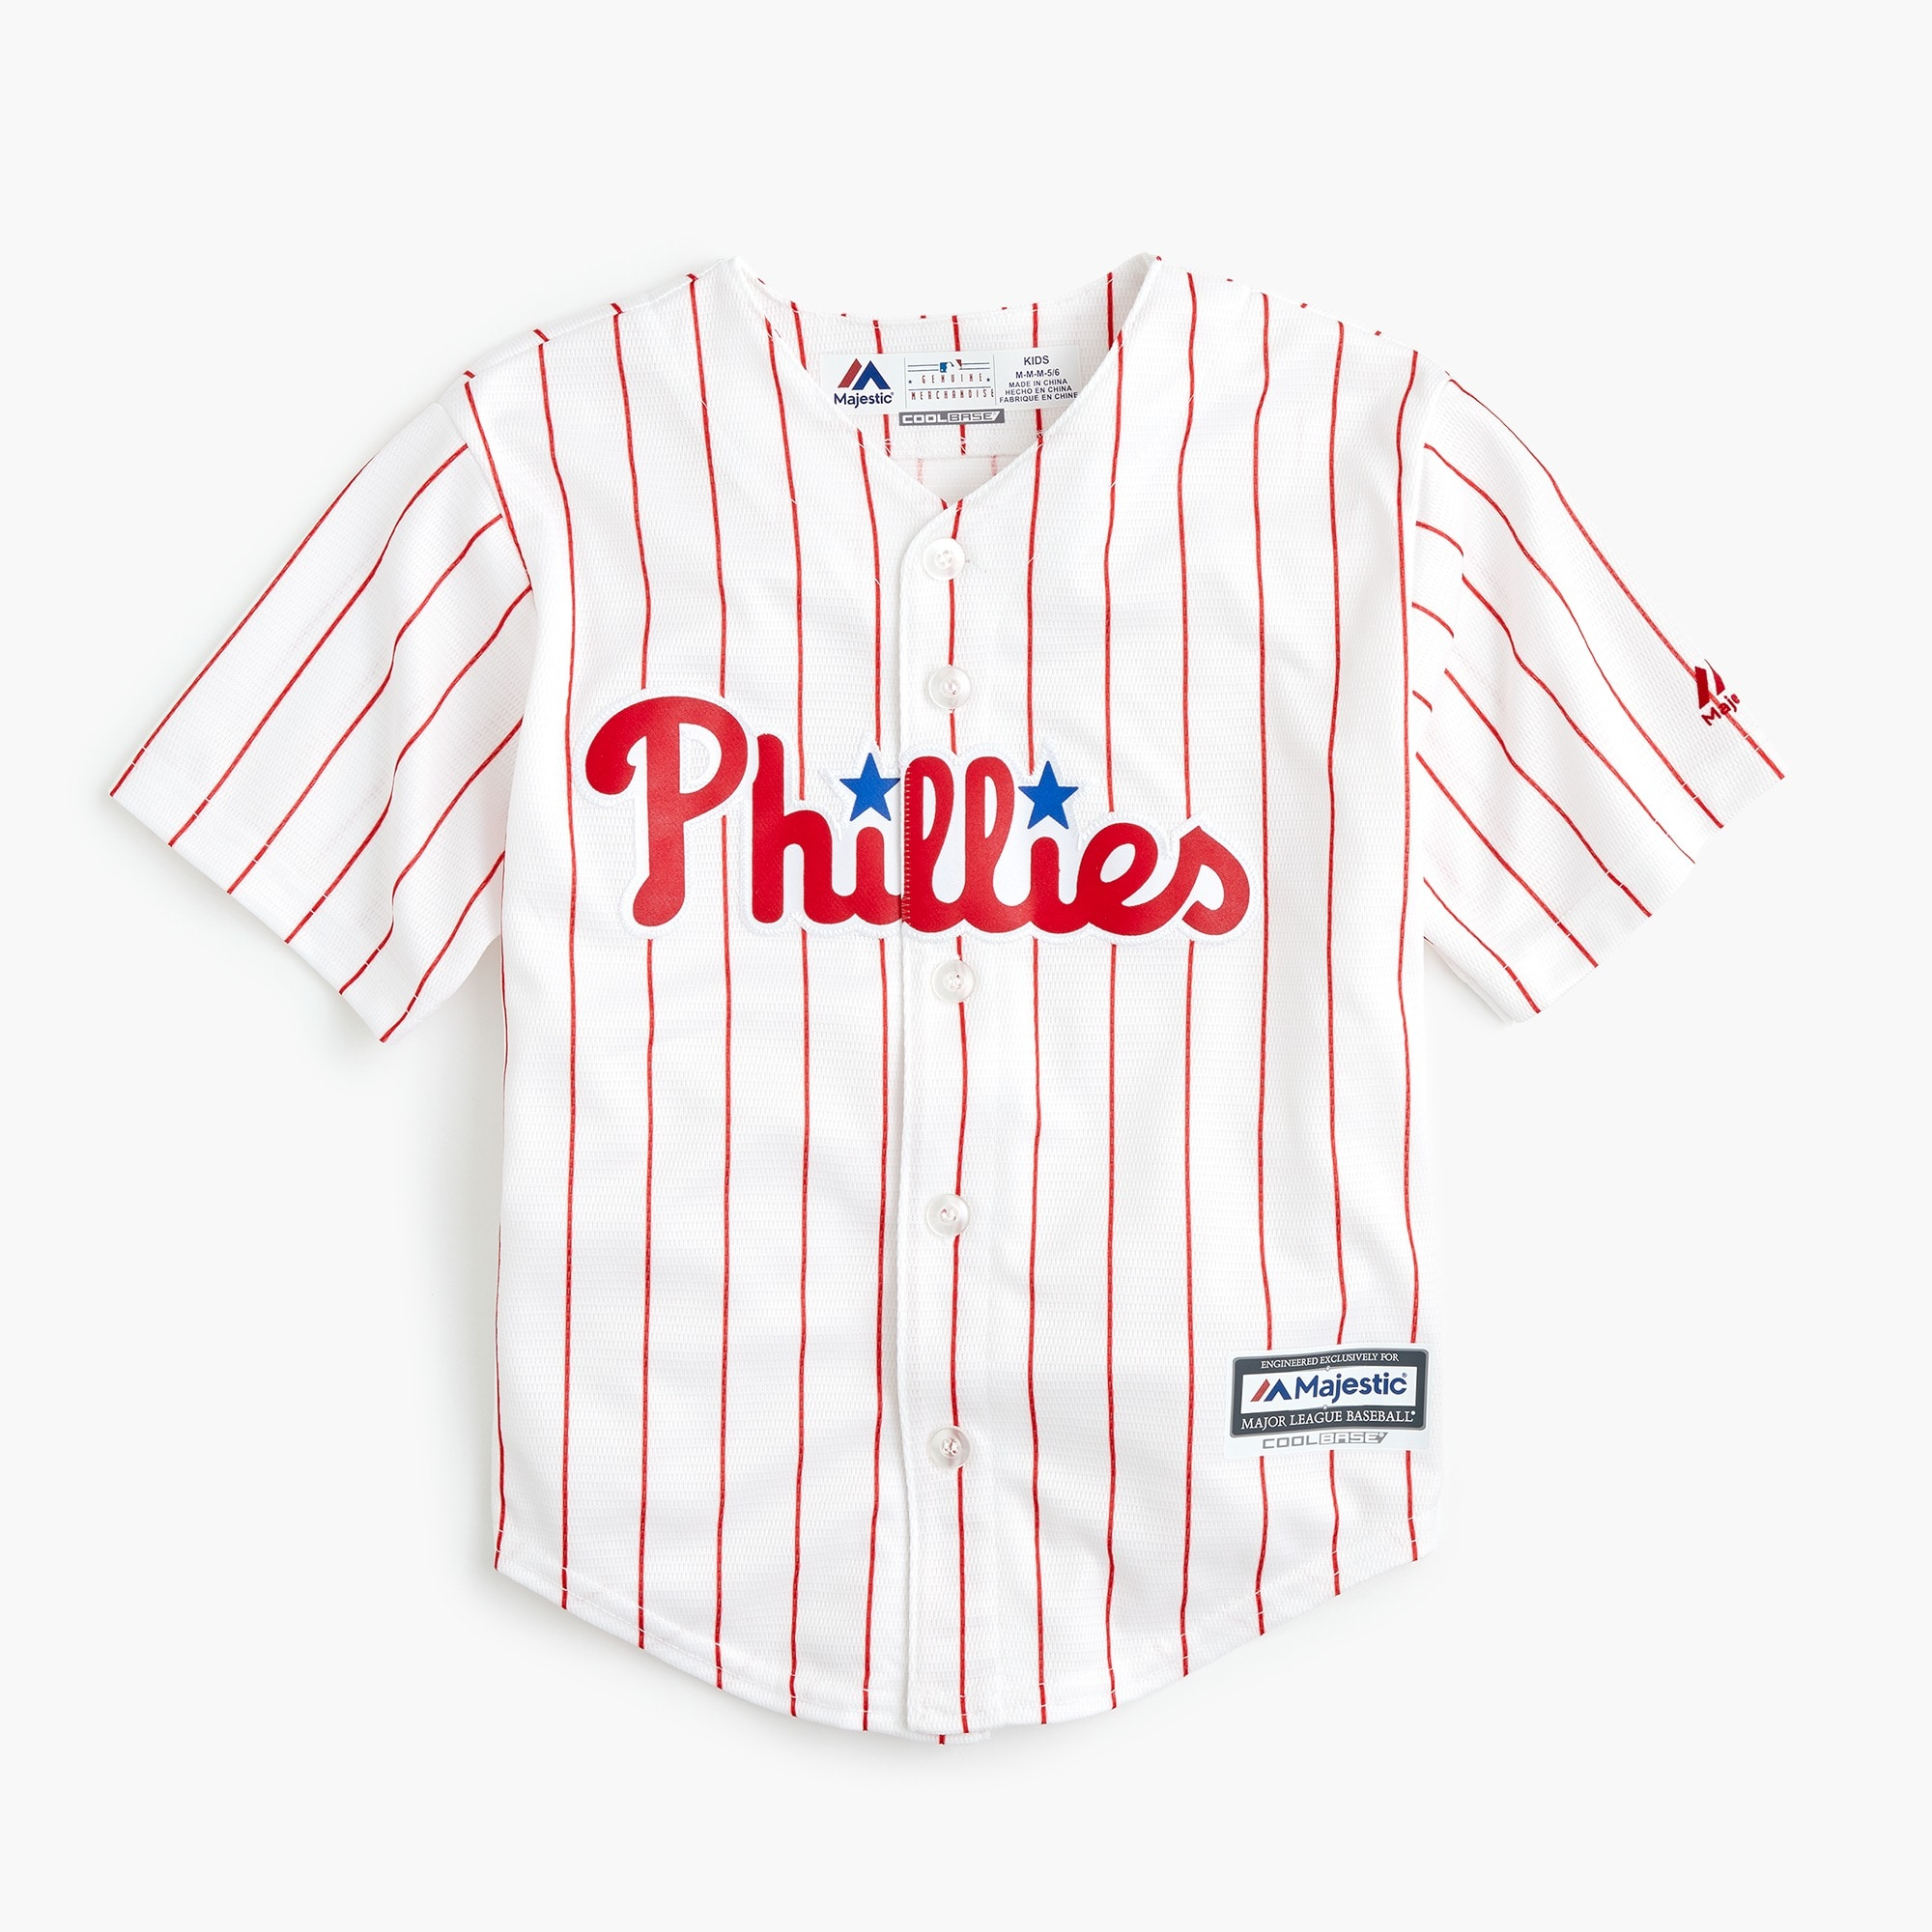 Image 1 for Kids' Philadelphia Phillies jersey